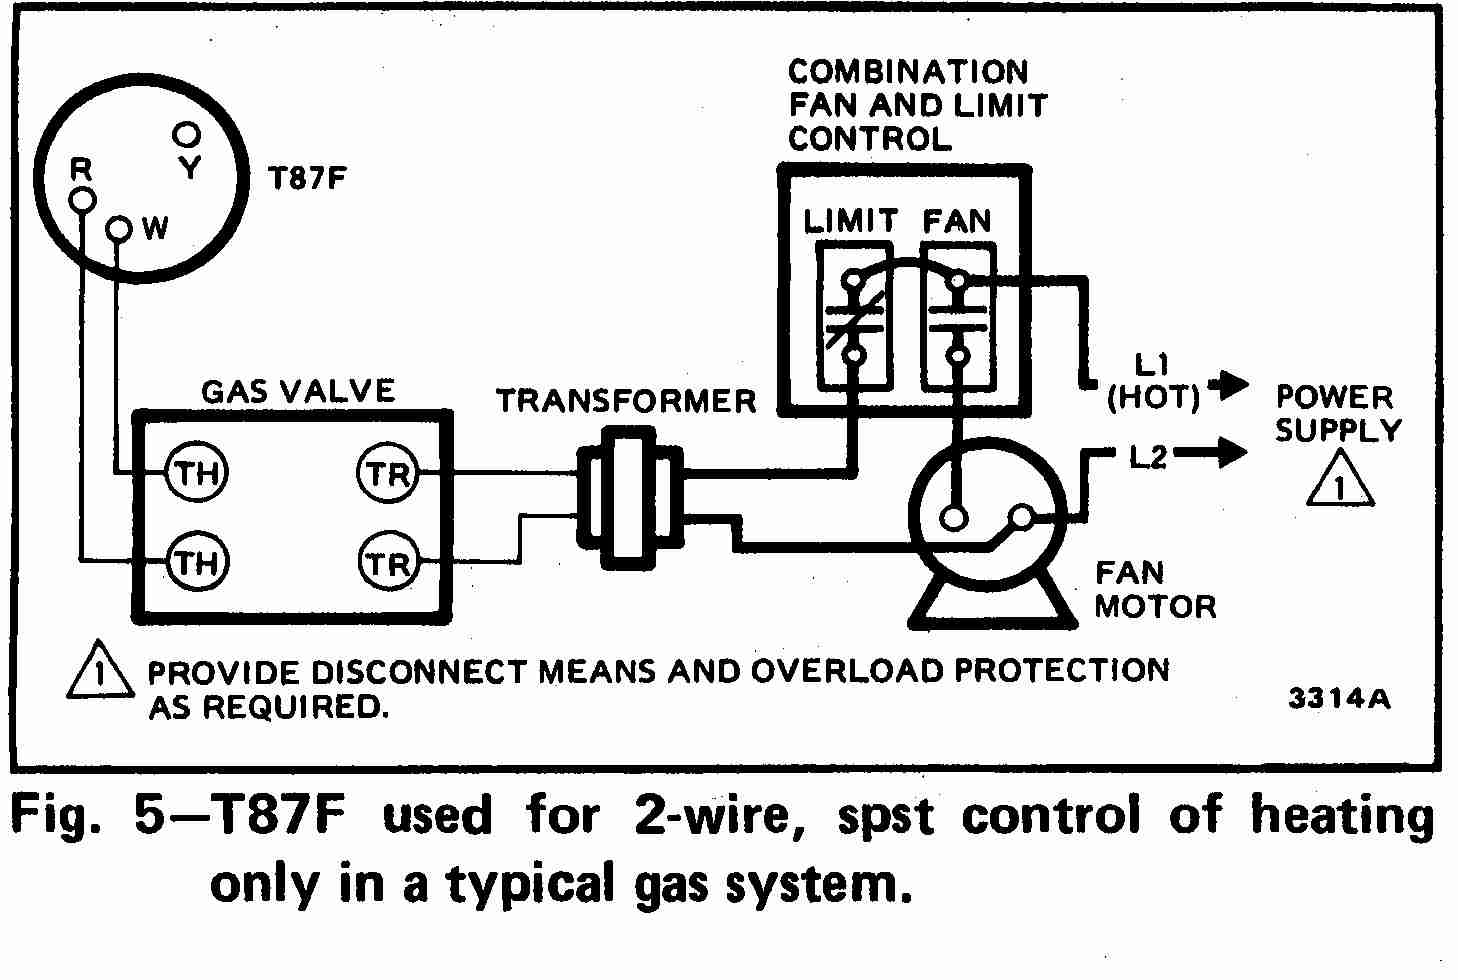 TT_T87F_0002_2Wg_DJF dayton thermostat wiring diagram rv furnace wiring diagrams LuxPro Thermostat Manual at soozxer.org